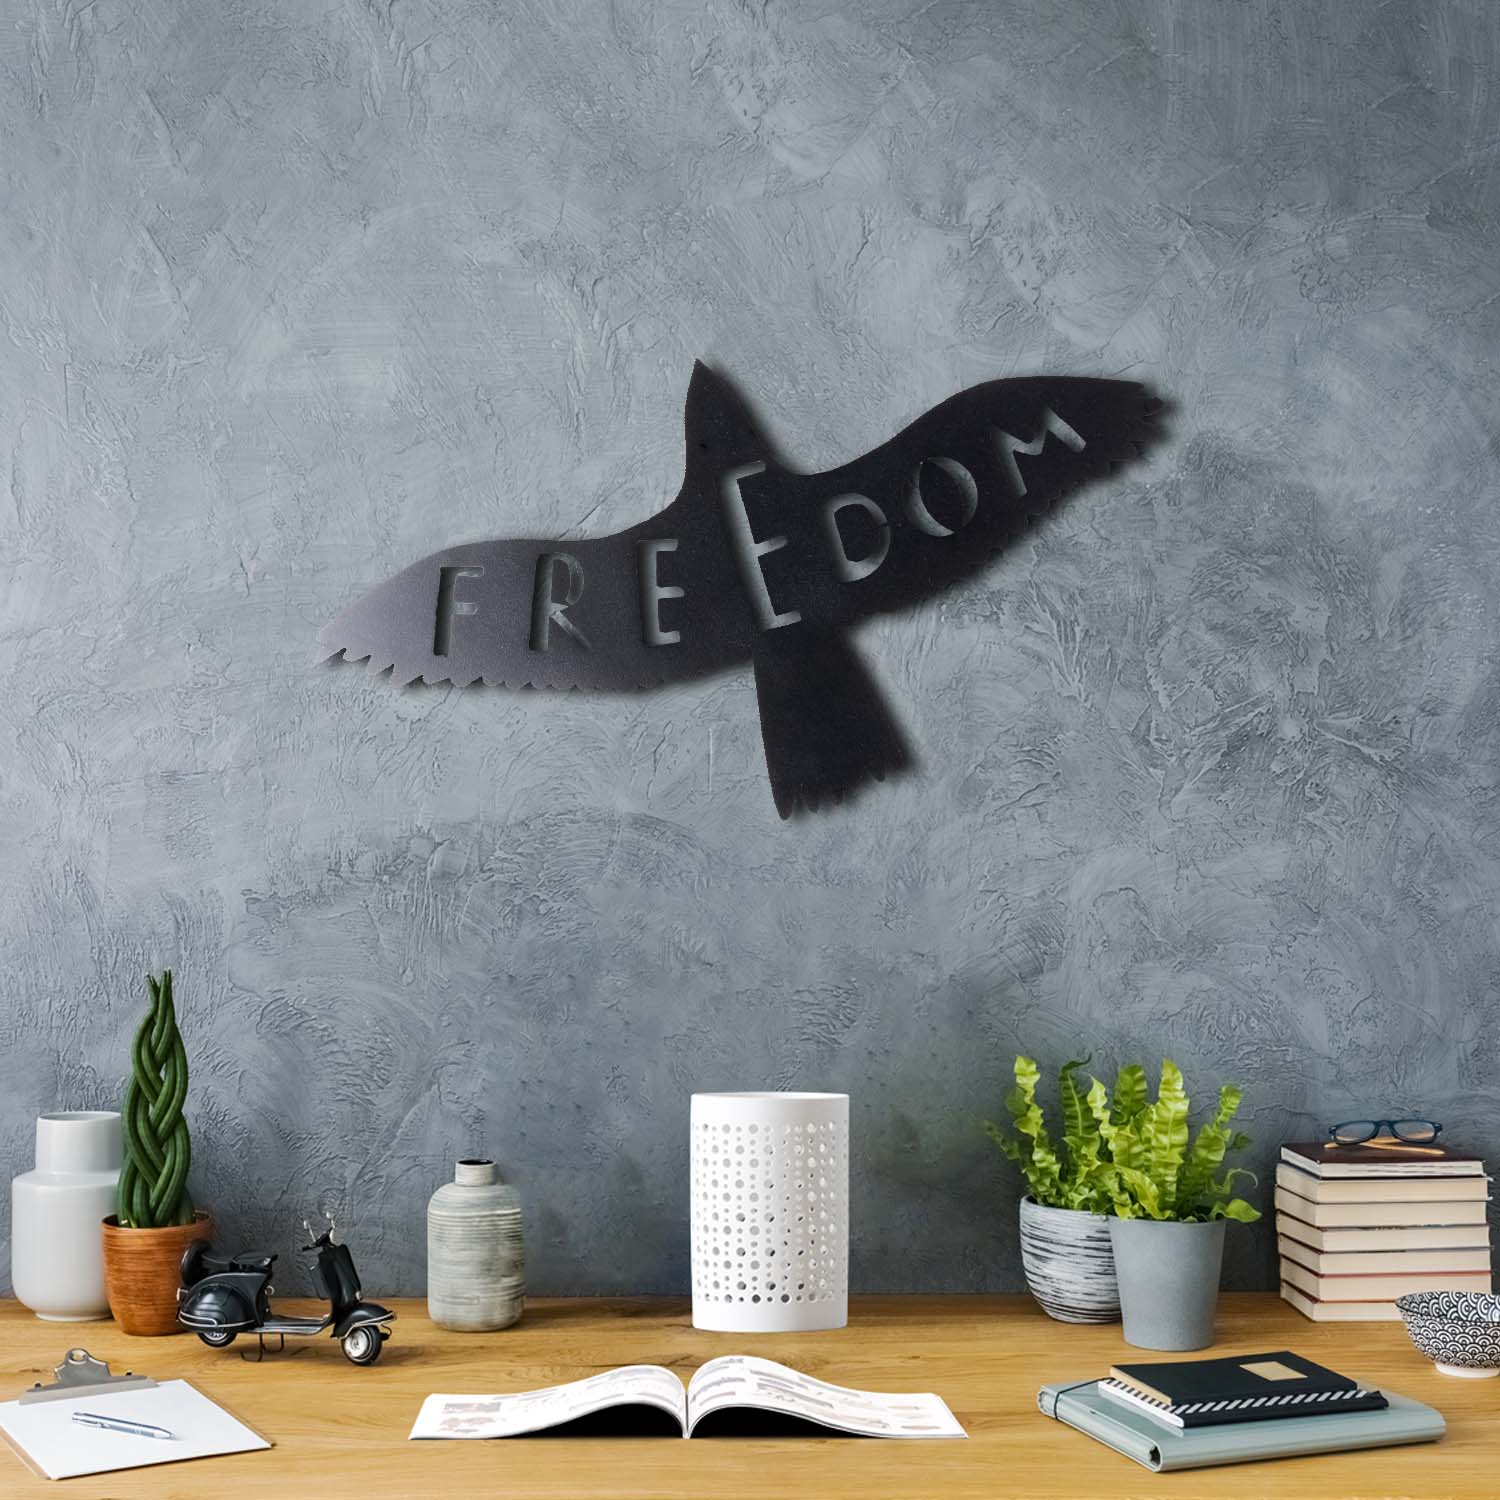 Bystag metal dekoratif duvar aksesuarı freedom-kuş- Bystag metal wall art-wall art-wall decor-metal wall decor-freedom-bird